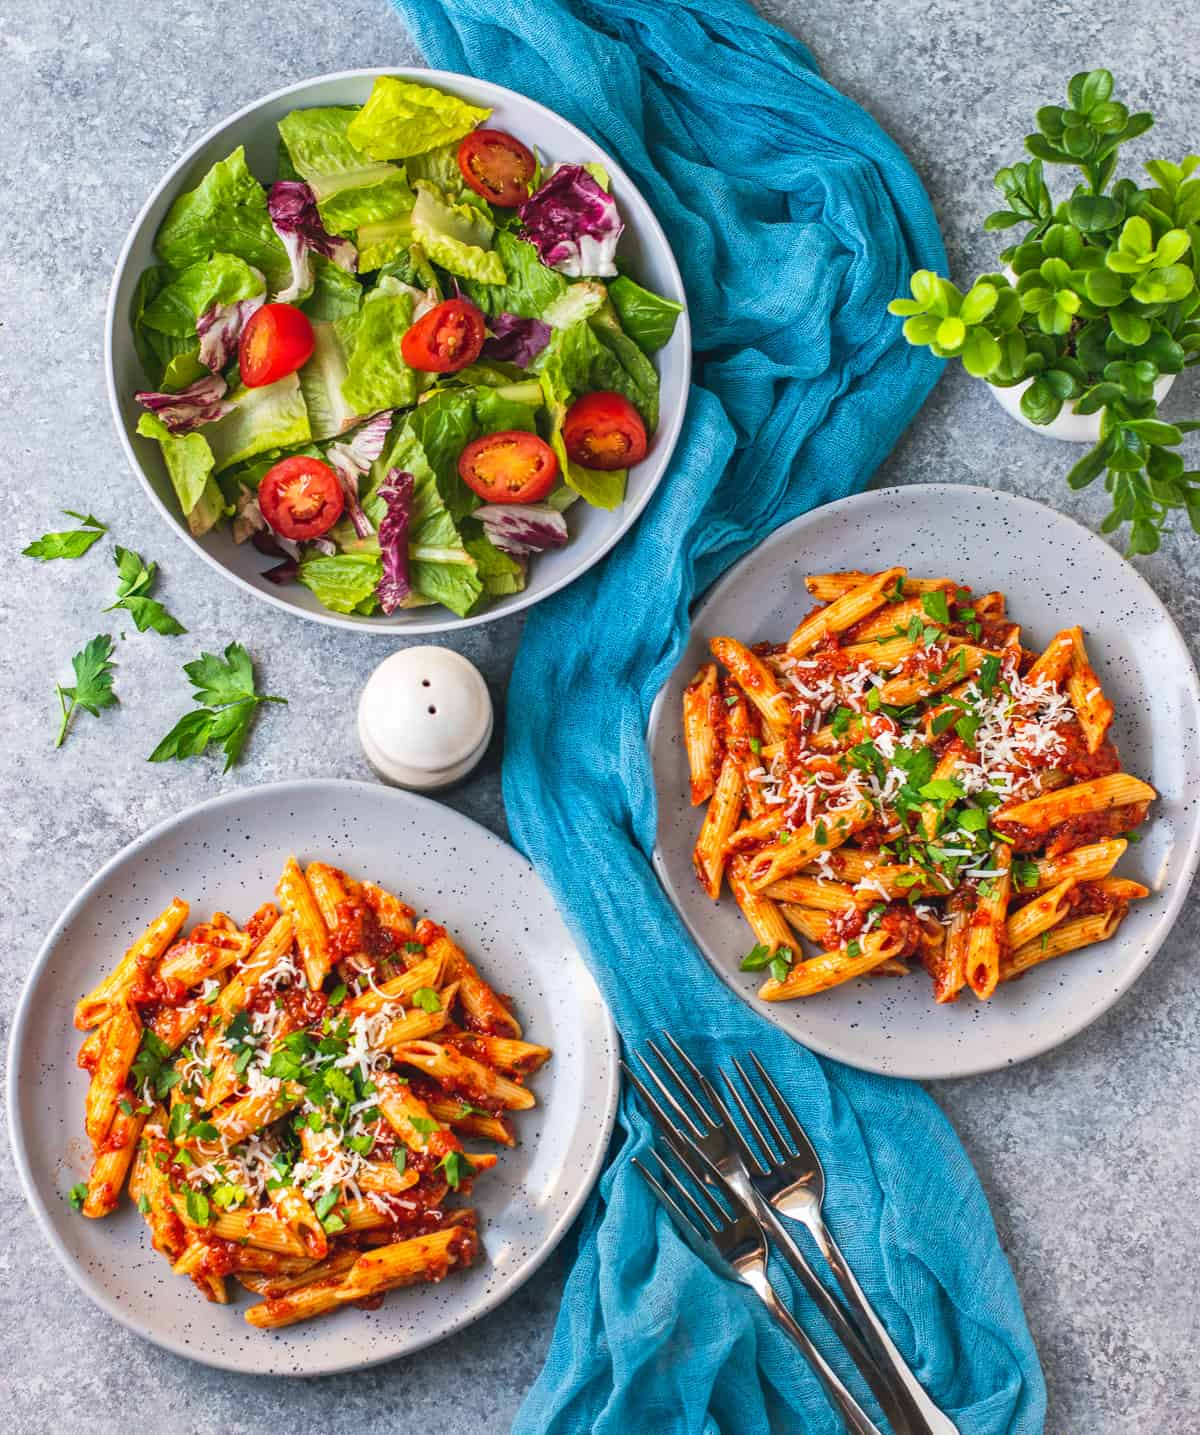 Vegan pasta served with salad on the side